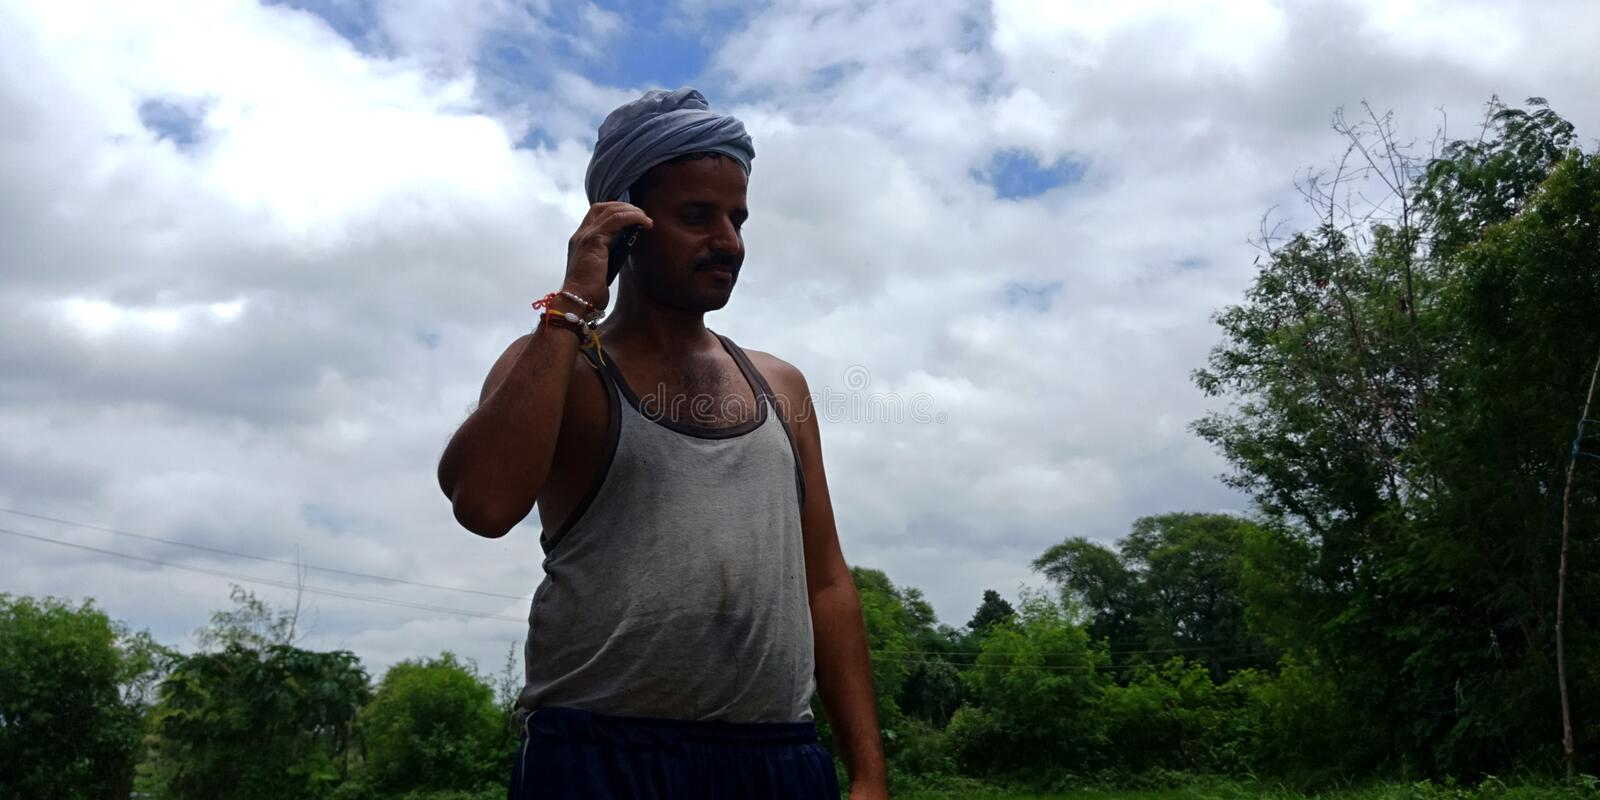 An indian farmer talking to mobile phone in the forest area. Shipyard, lady, seating, animals, pot, villager, teen, operating, laptop, computer, corridor stock images